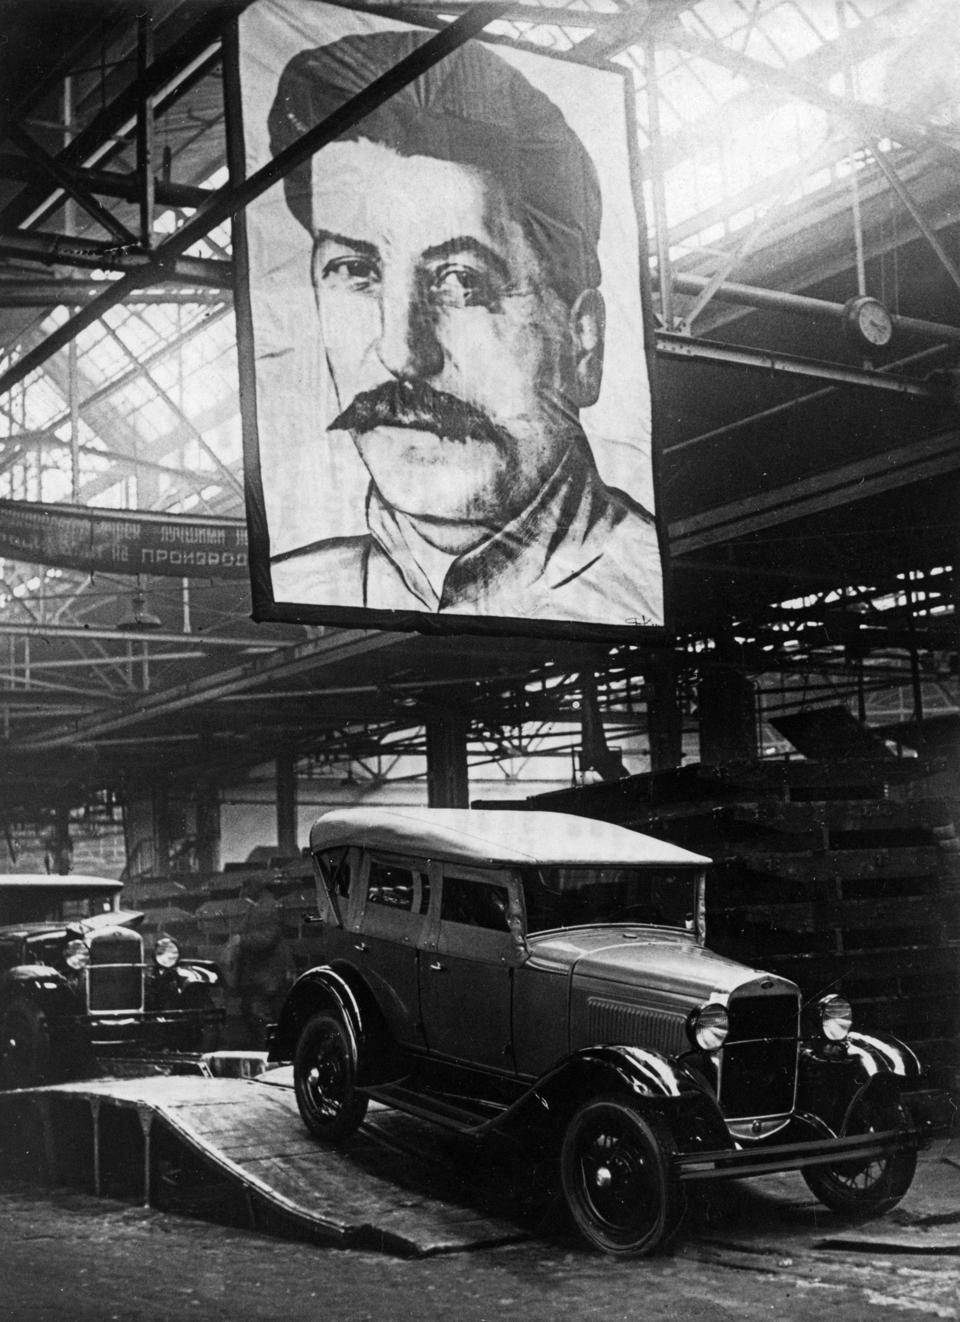 Automobiles (1929 ford type) leaving the assembly line of the molotov auto plant in gorky, ussr, 1930s.